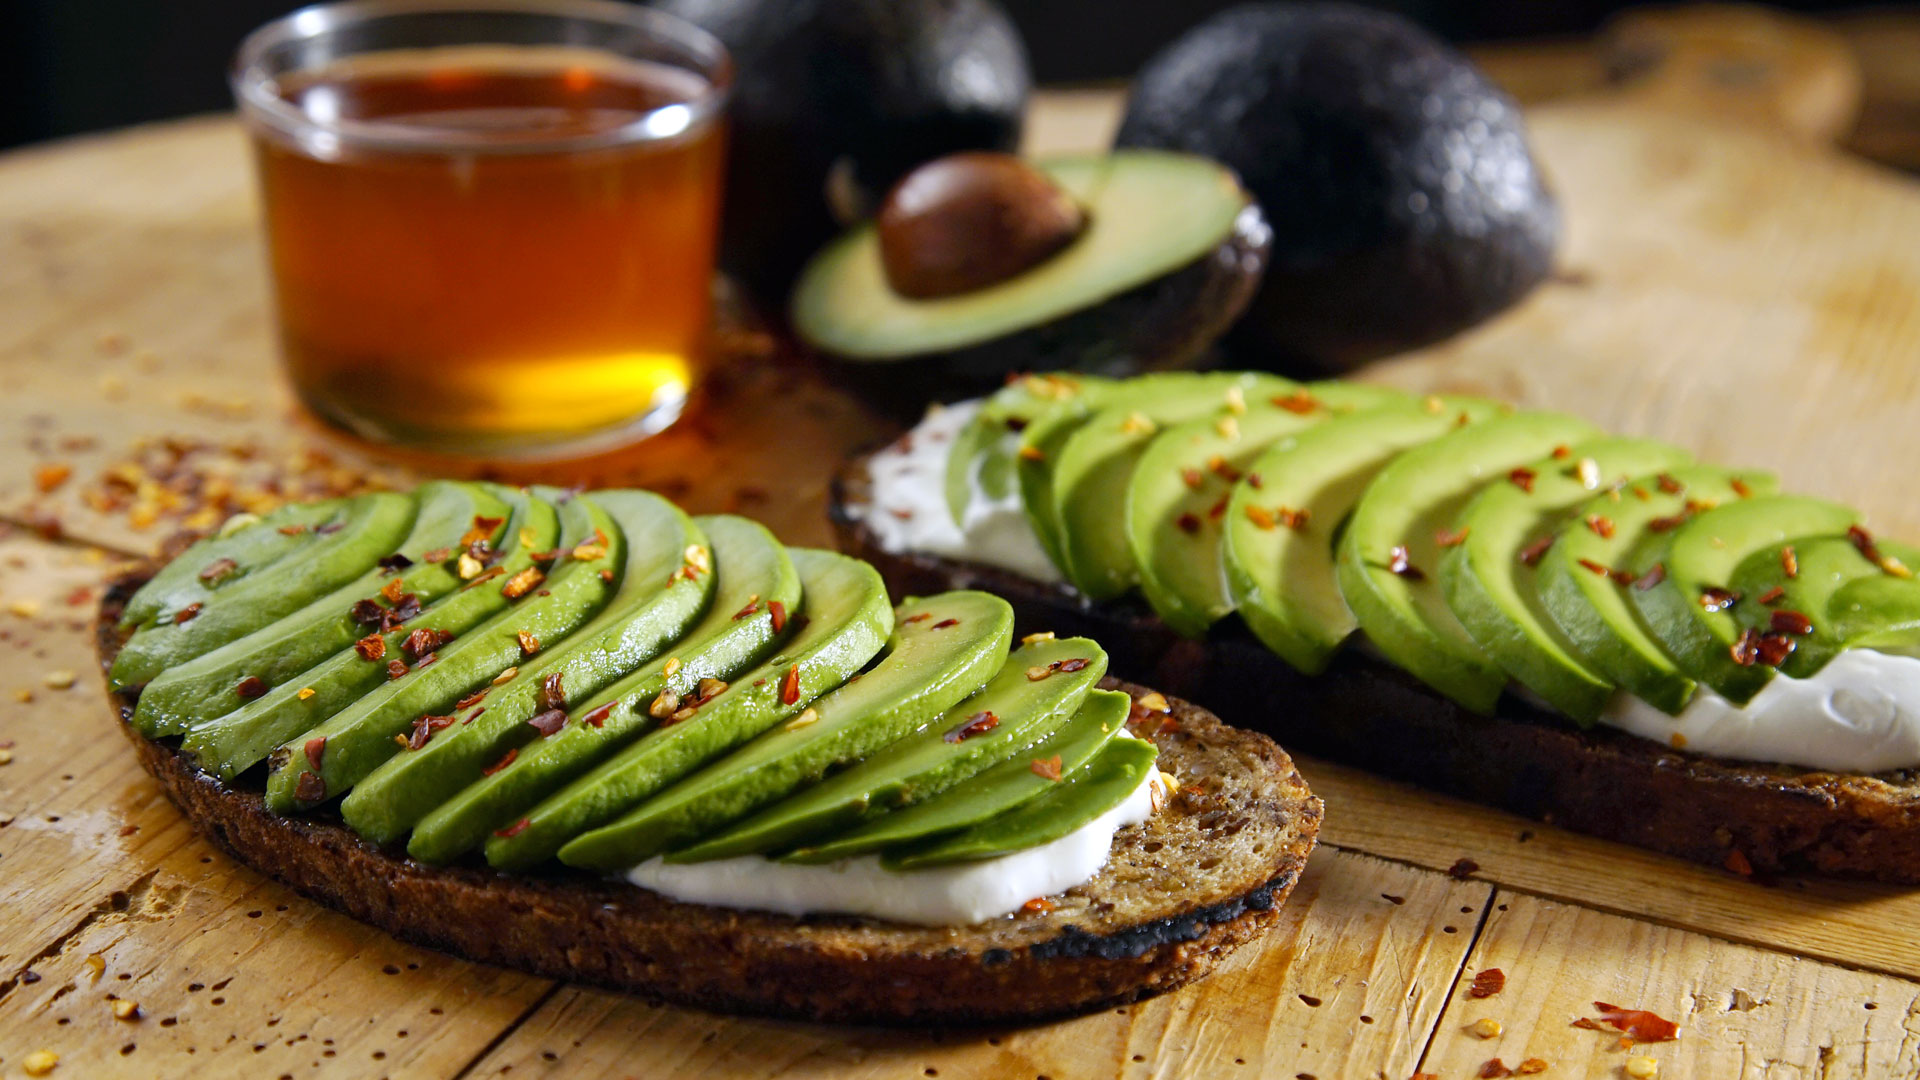 Give Up Avocado On Toast, Gain A Deposit For Housing? A 26 Year Old's View Of Buying In London